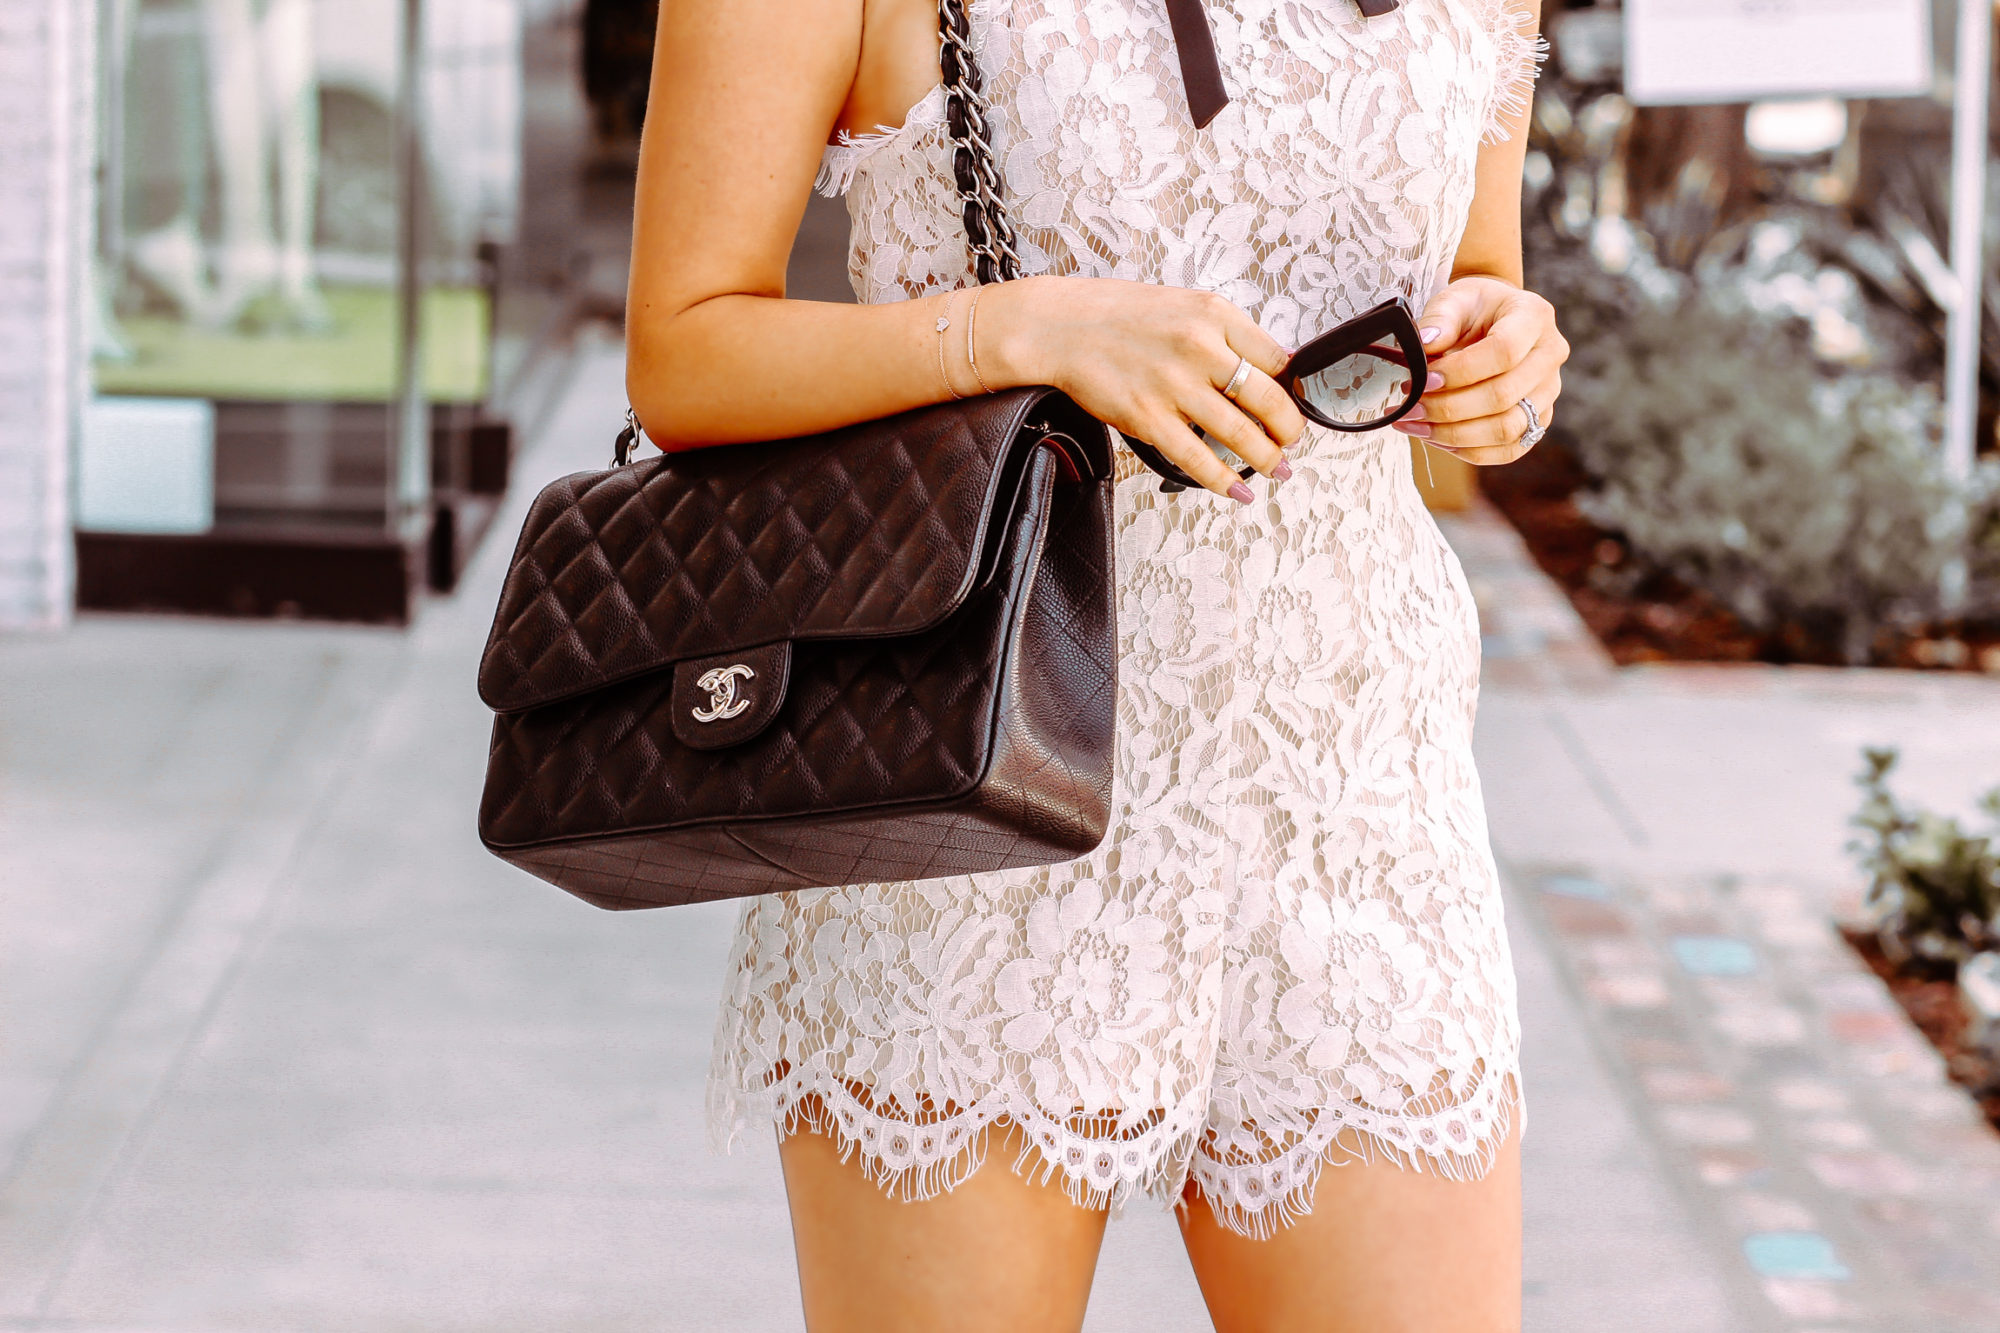 3c65a298b497 White Lace Romper - Bridal Shower Outfit Inspo - BLONDIE IN THE CITY